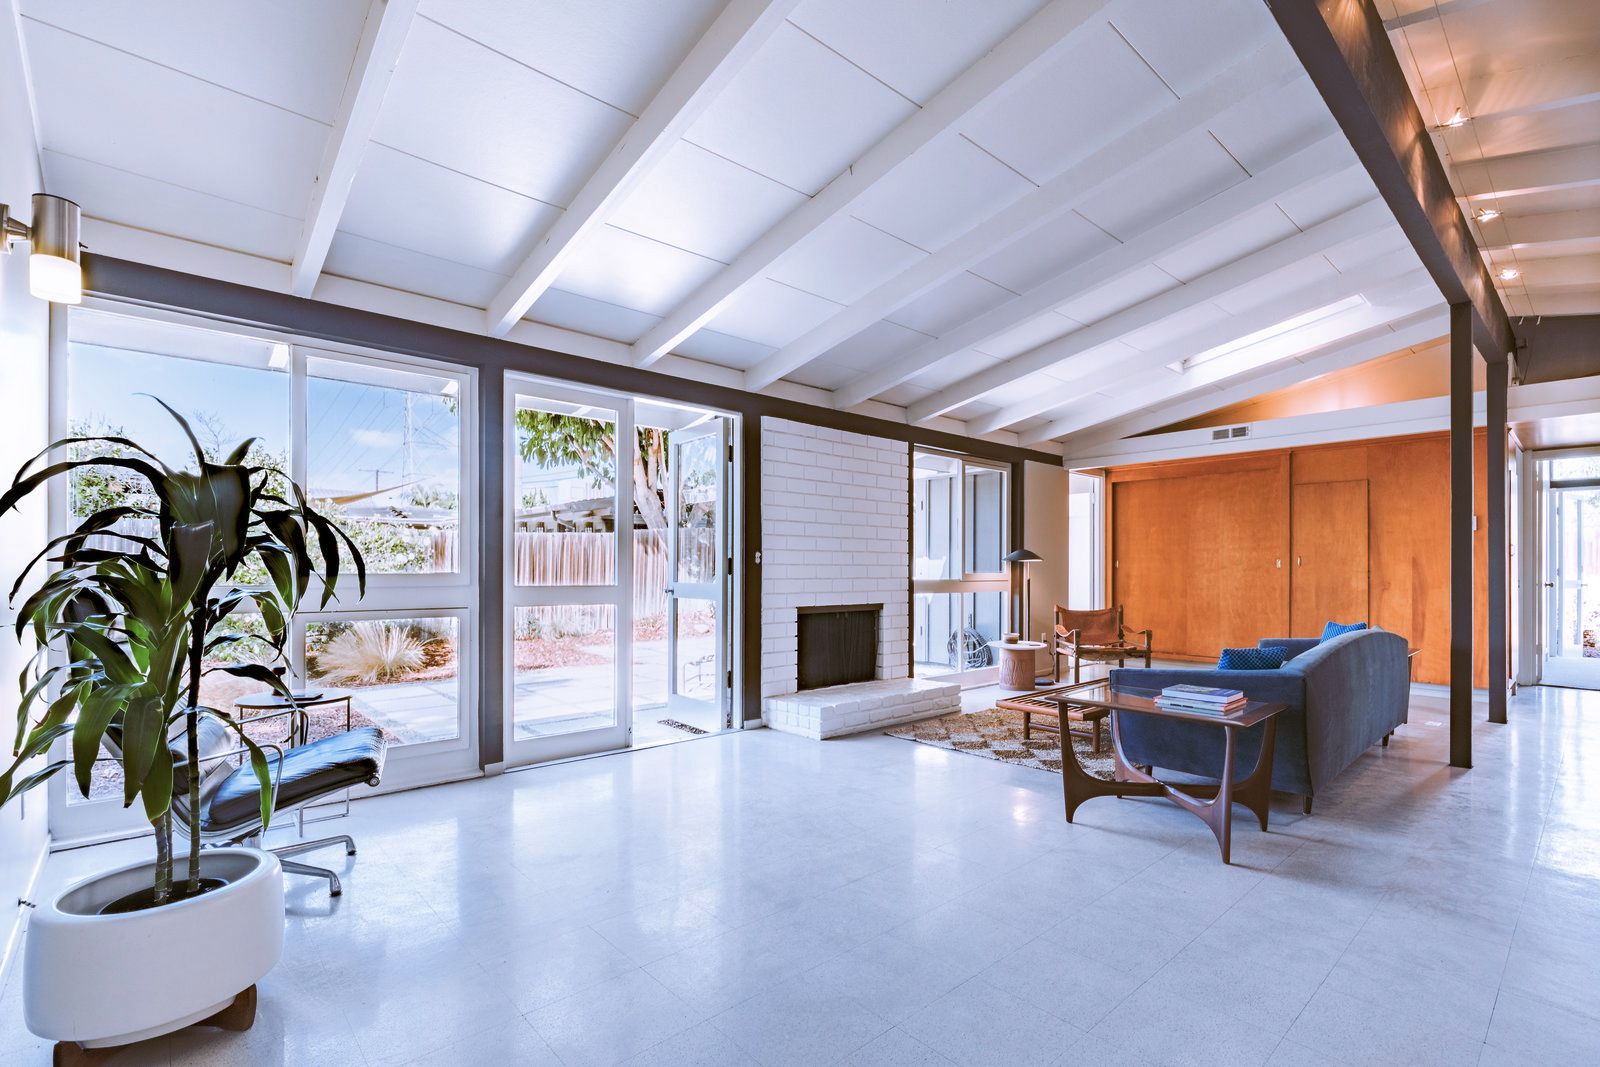 A restored Cliff May home lists in Long Beach for $849k